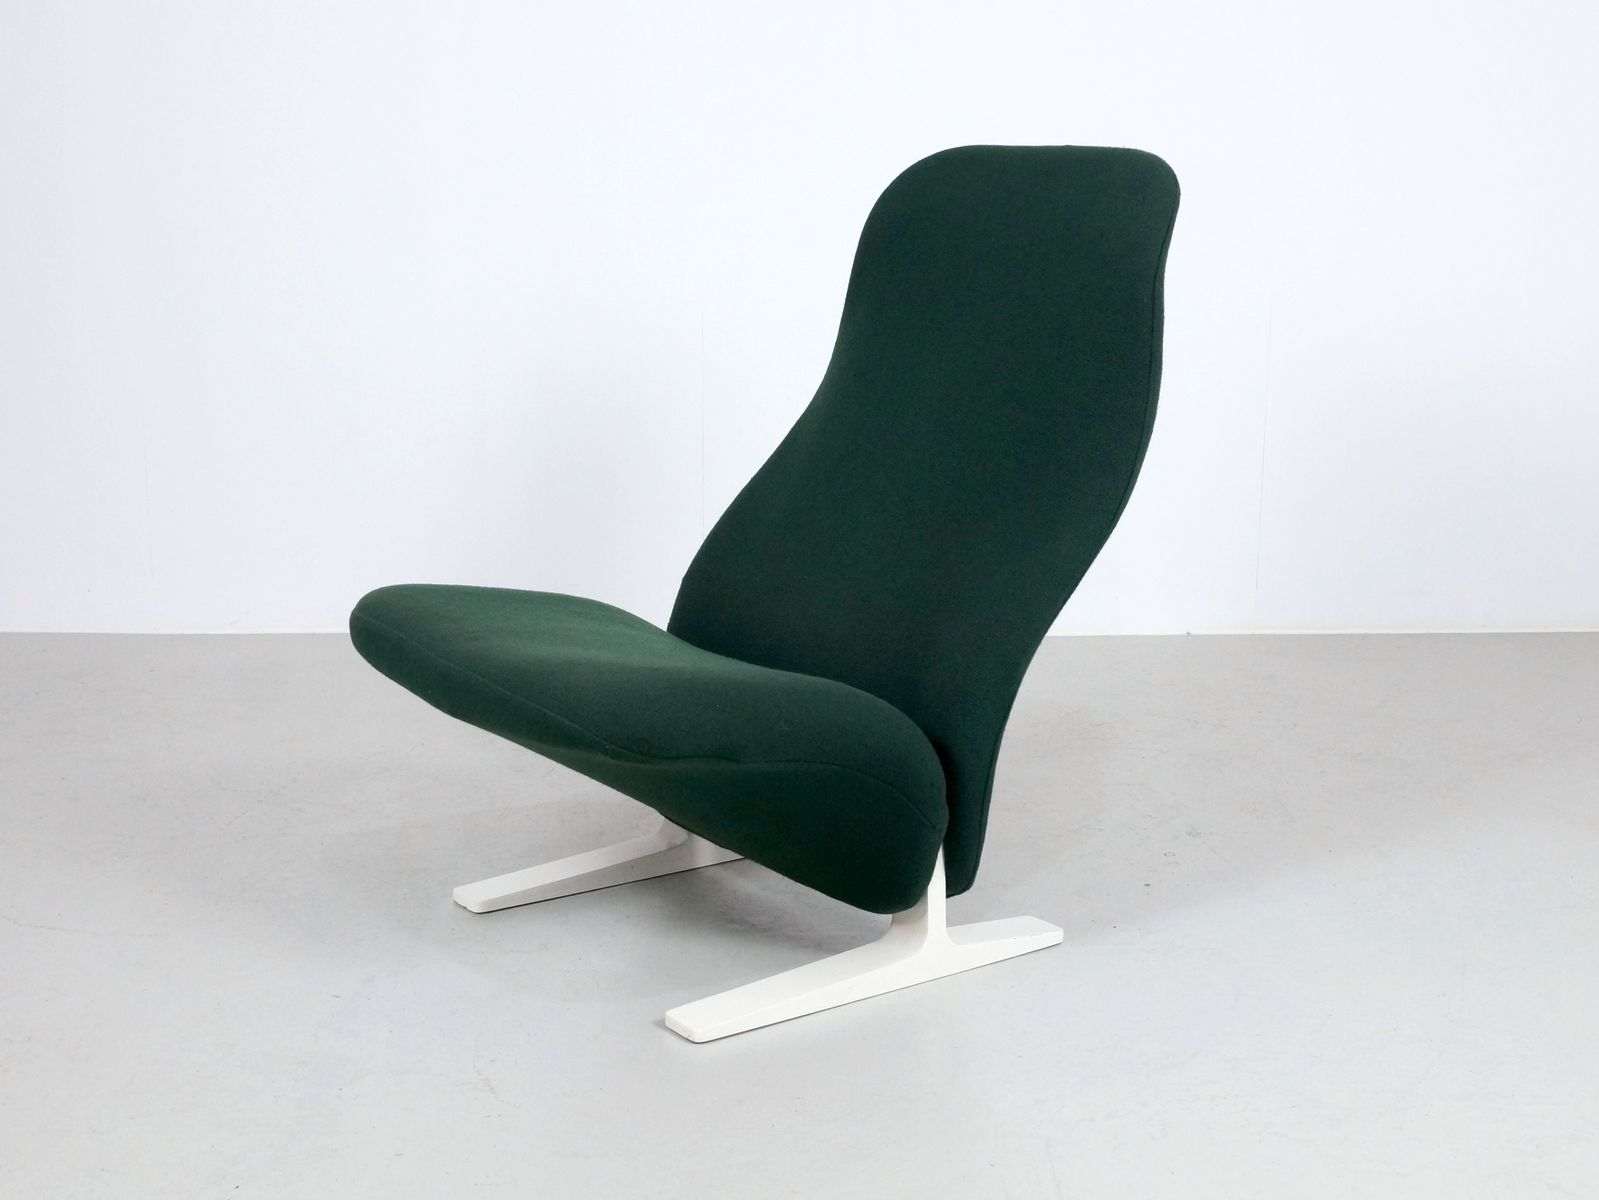 fauteuil concorde vert par pierre paulin for artifort en. Black Bedroom Furniture Sets. Home Design Ideas